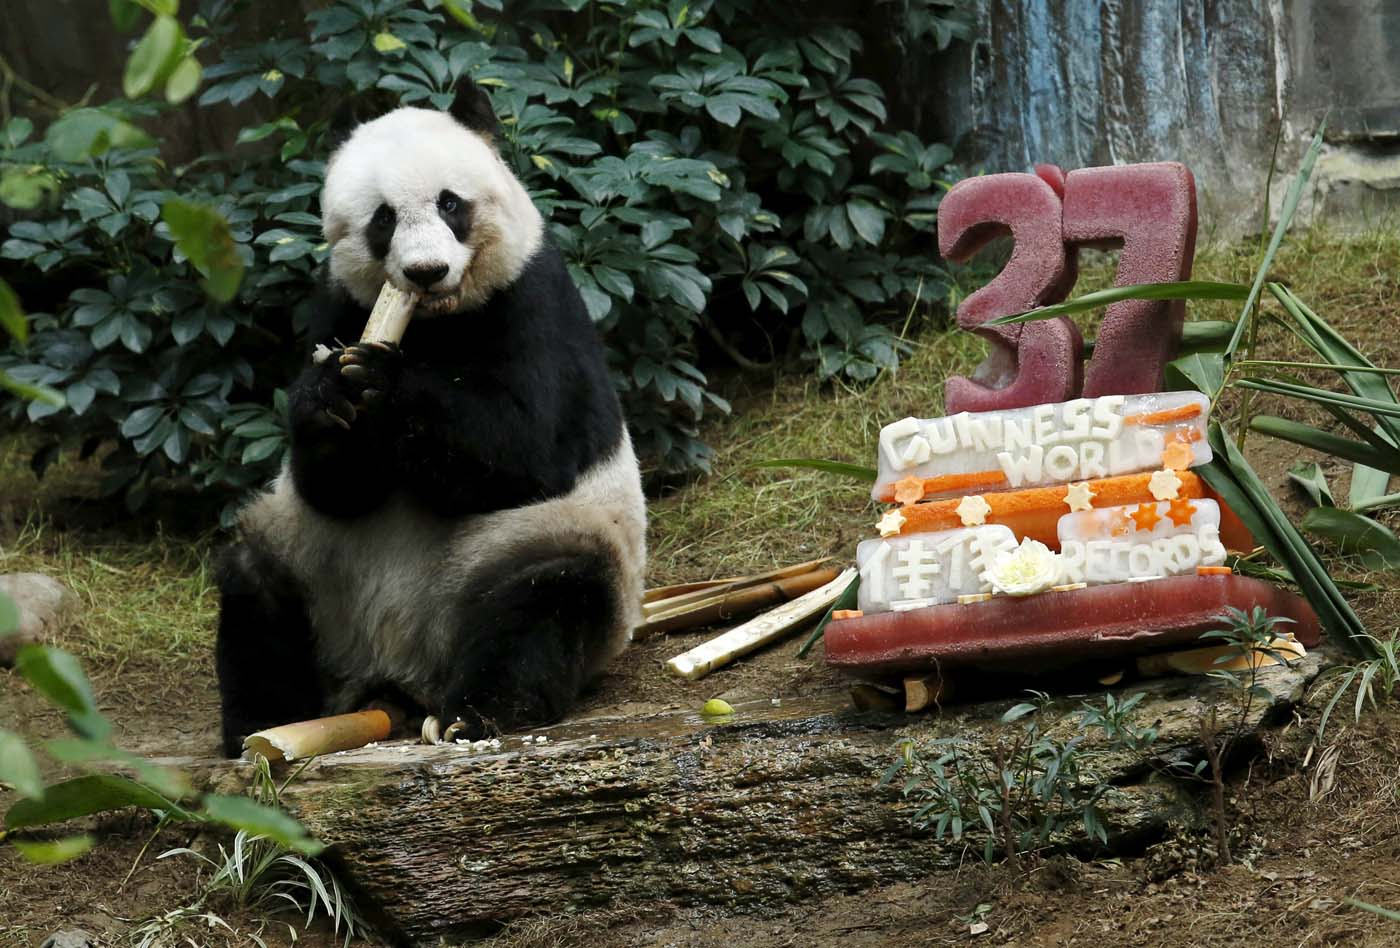 Giant panda Jia Jia eats beside a birthday cake made from ice and vegetables as she celebrates her 37-year-old birthday at the Hong Kong Ocean Park